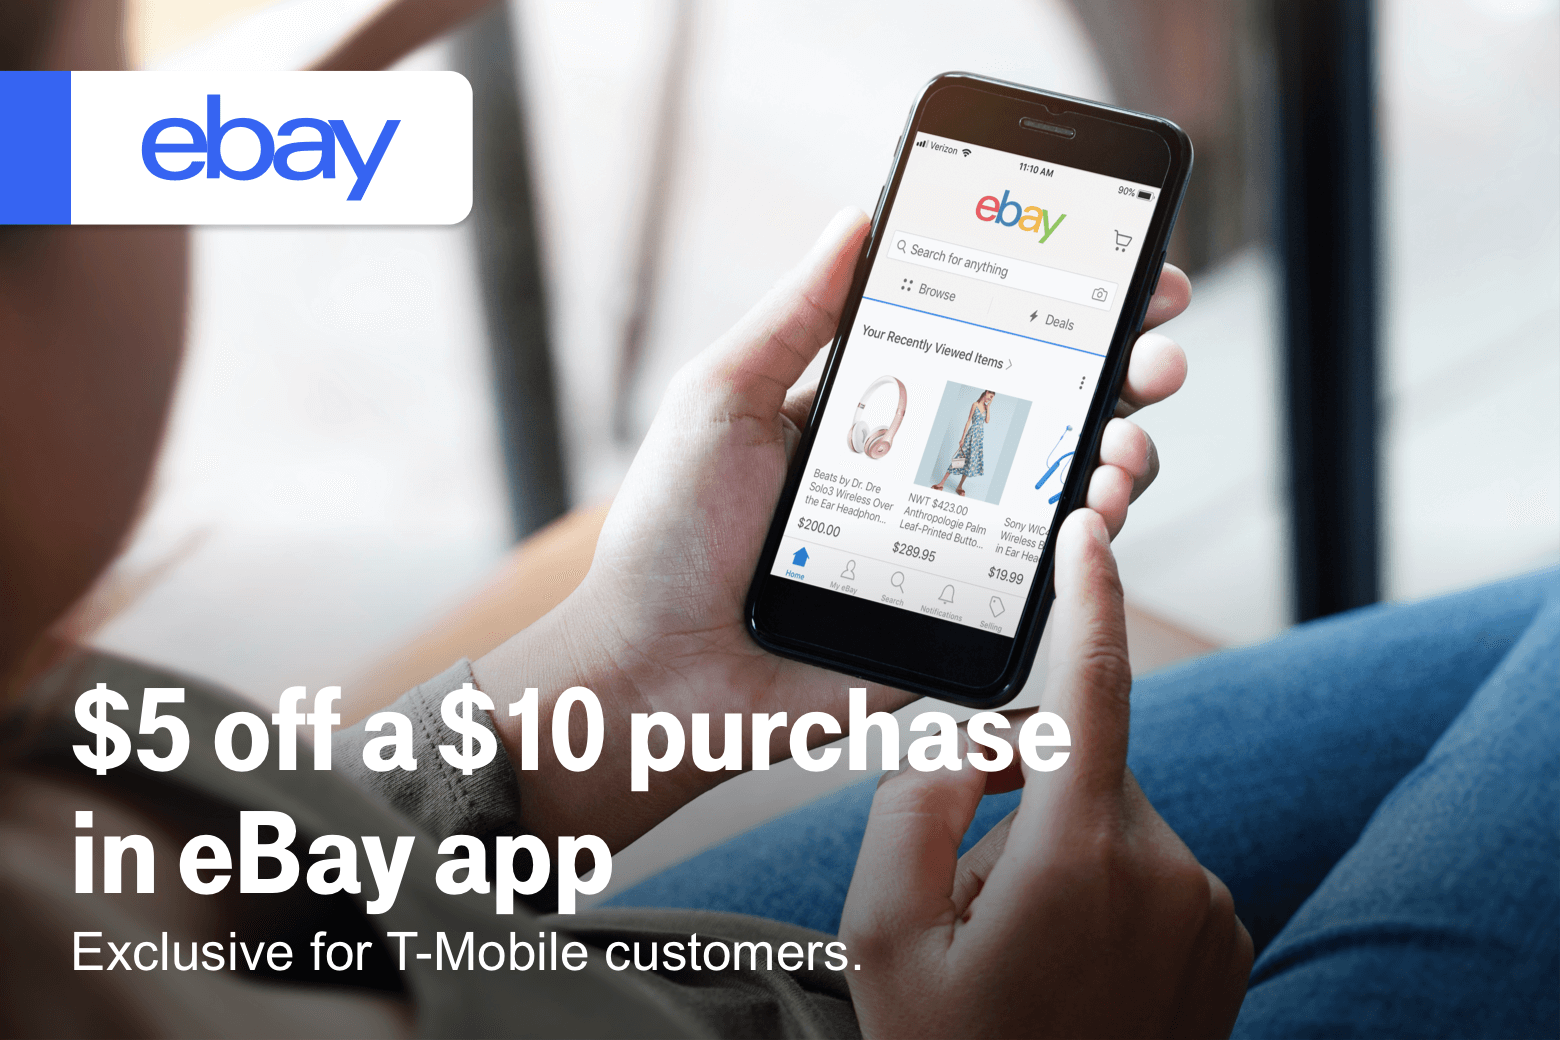 eBay. $5 off a $10 purchase in eBay app. Exclusive for T-Mobile customers.